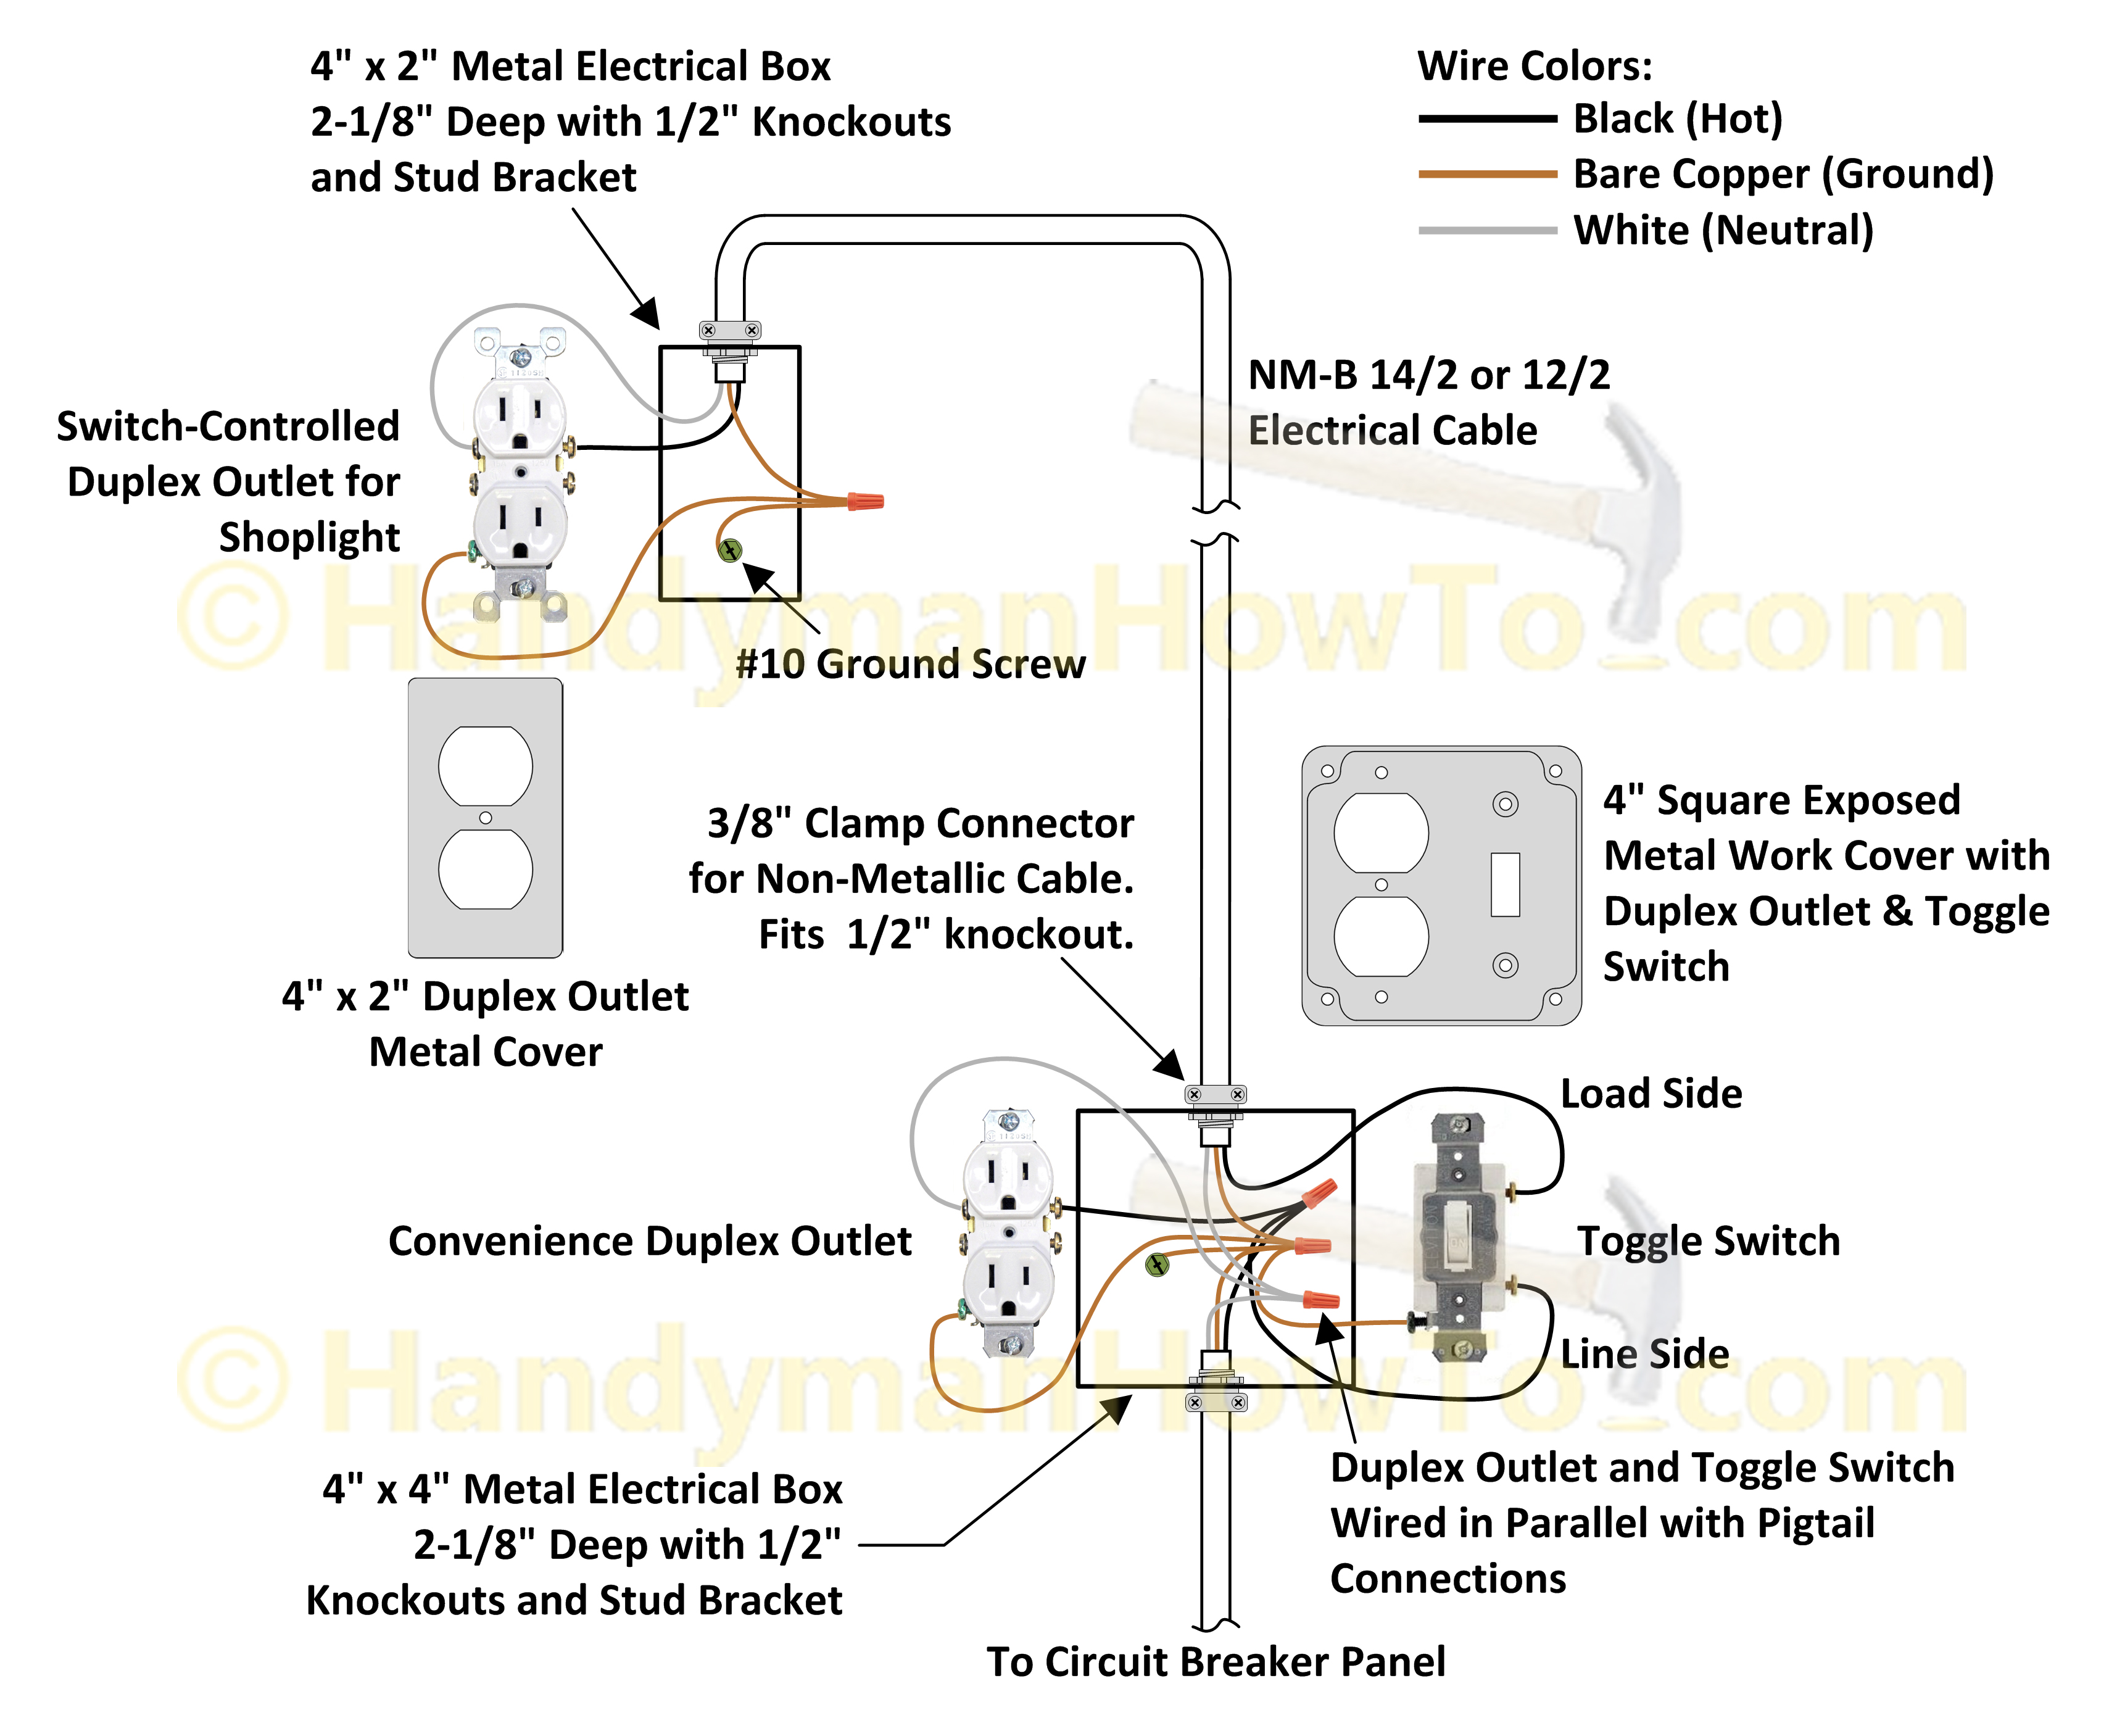 wiring diagram for outlet the wiring diagram electric outlet wiring diagram vidim wiring diagram wiring diagram